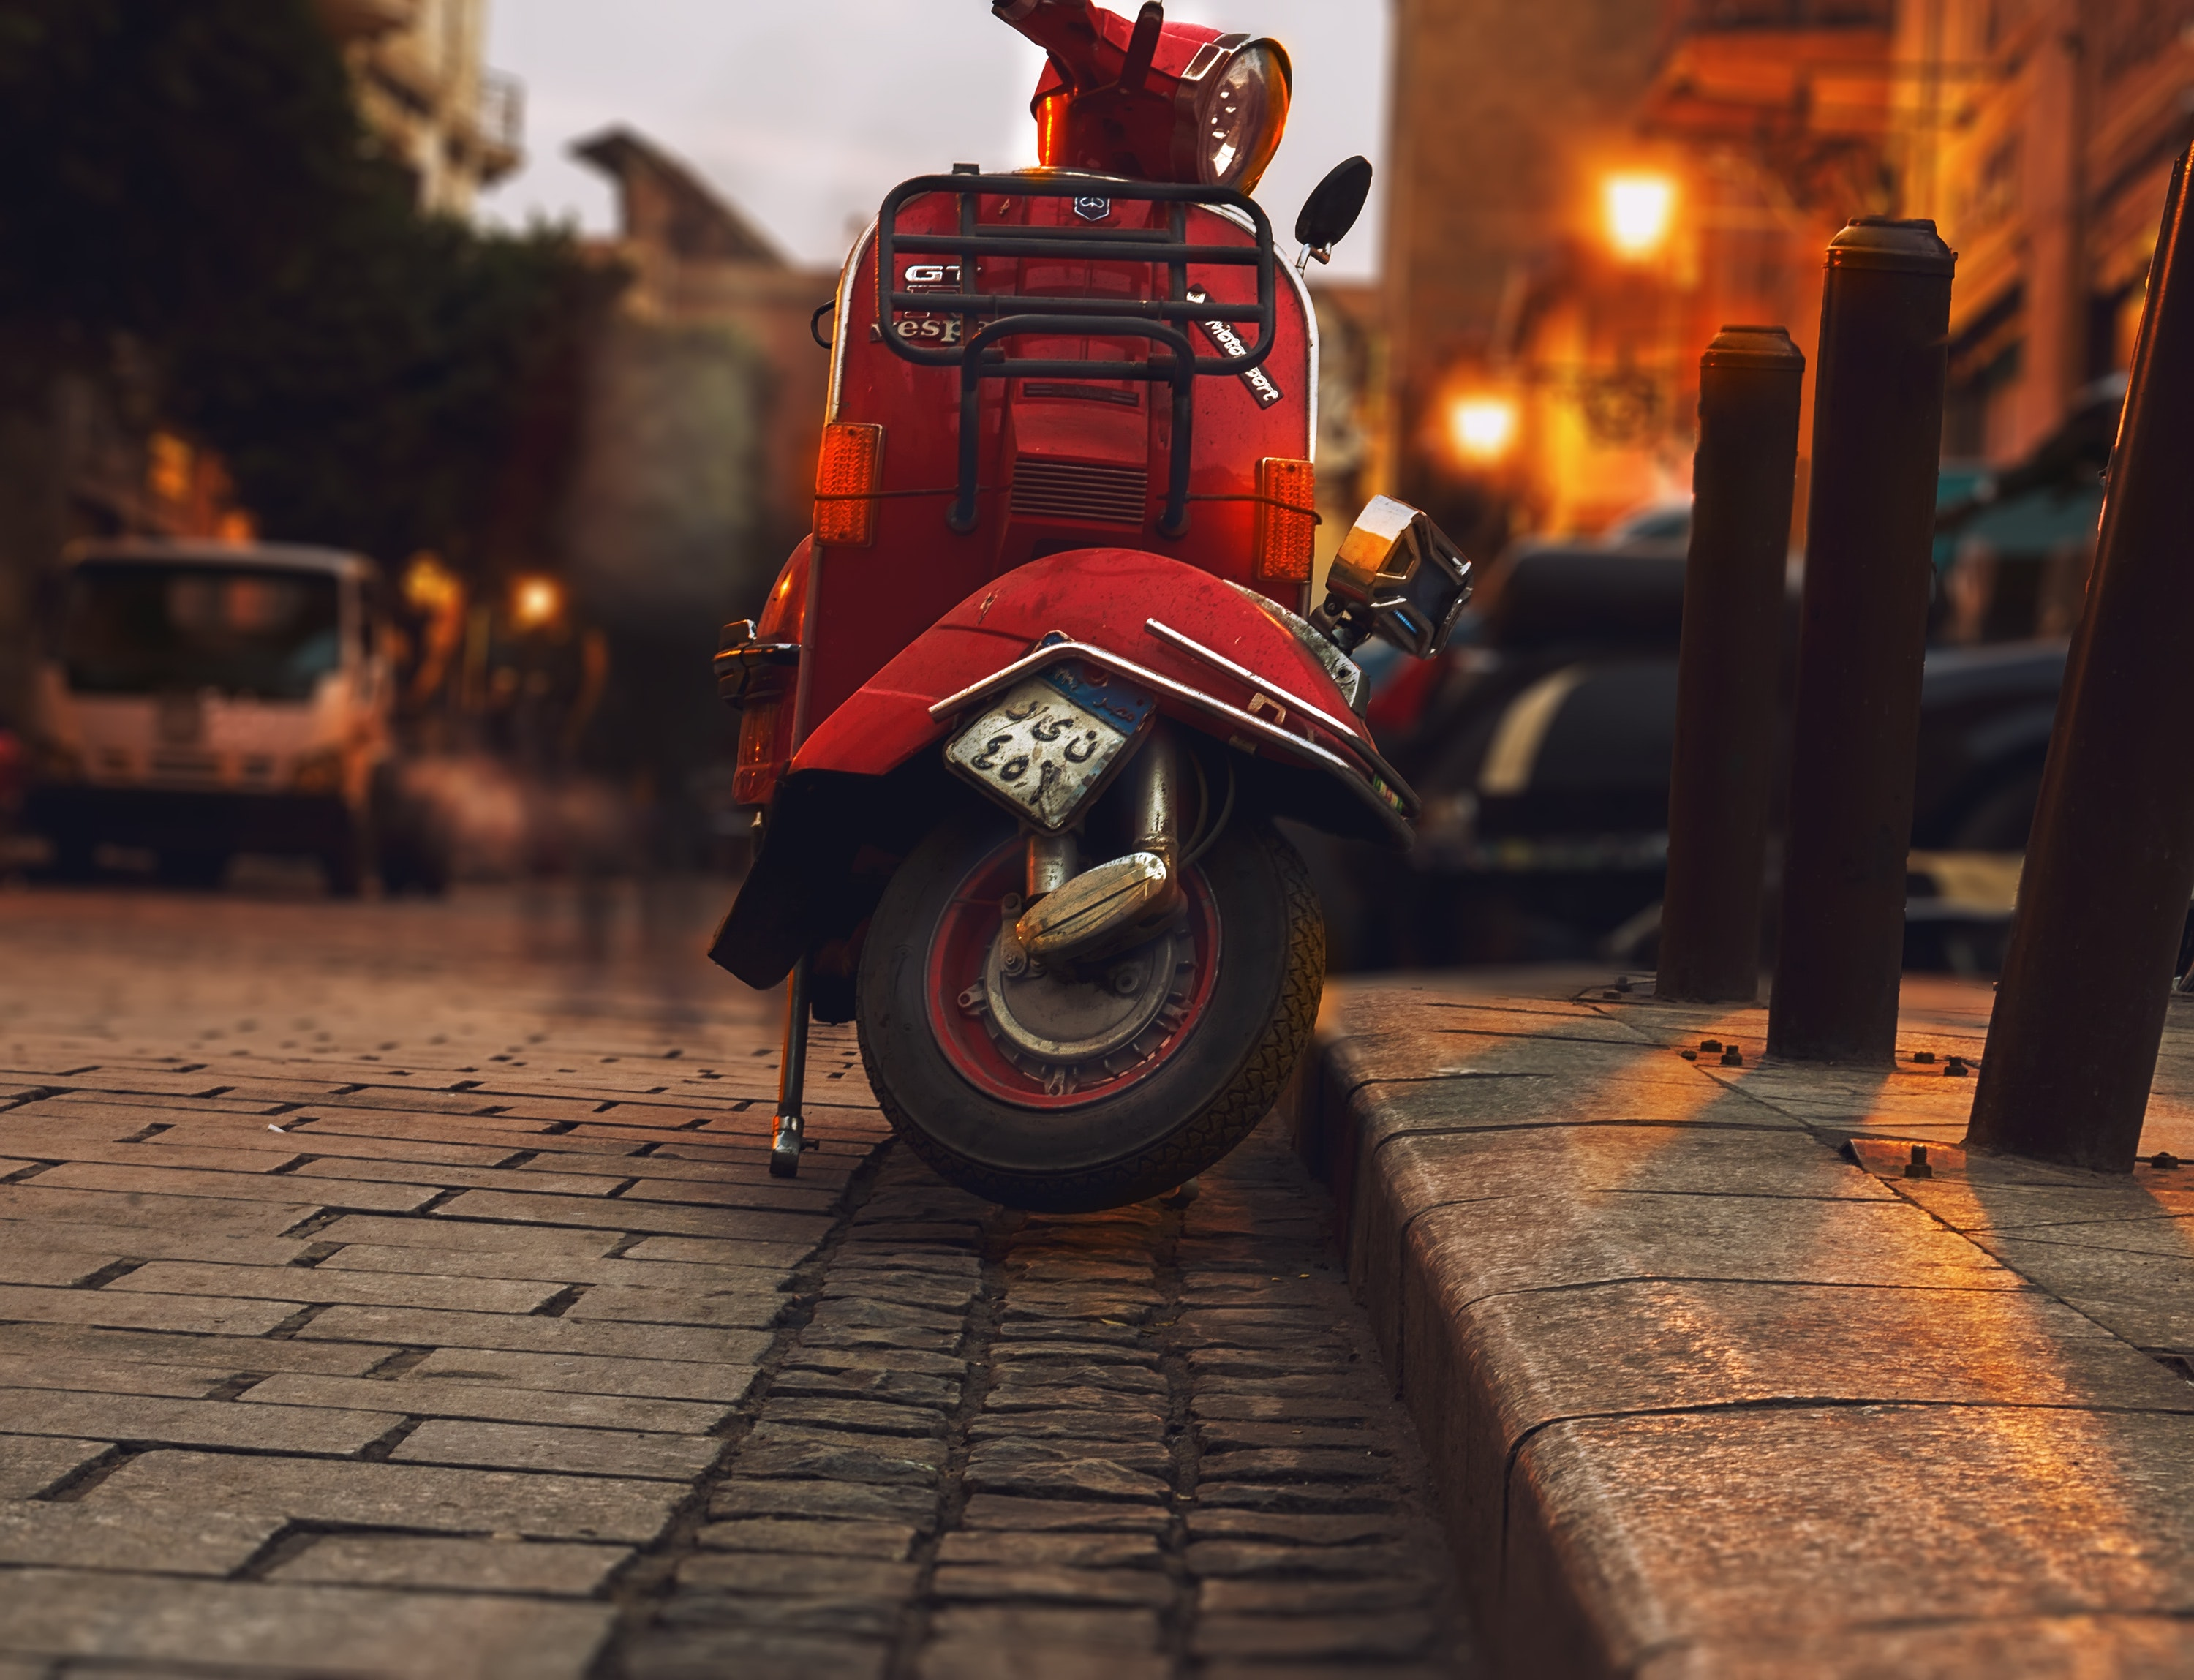 Selective Photography of Red Motor Scooter, Street, Vintage, Vehicles, Vehicle, HQ Photo